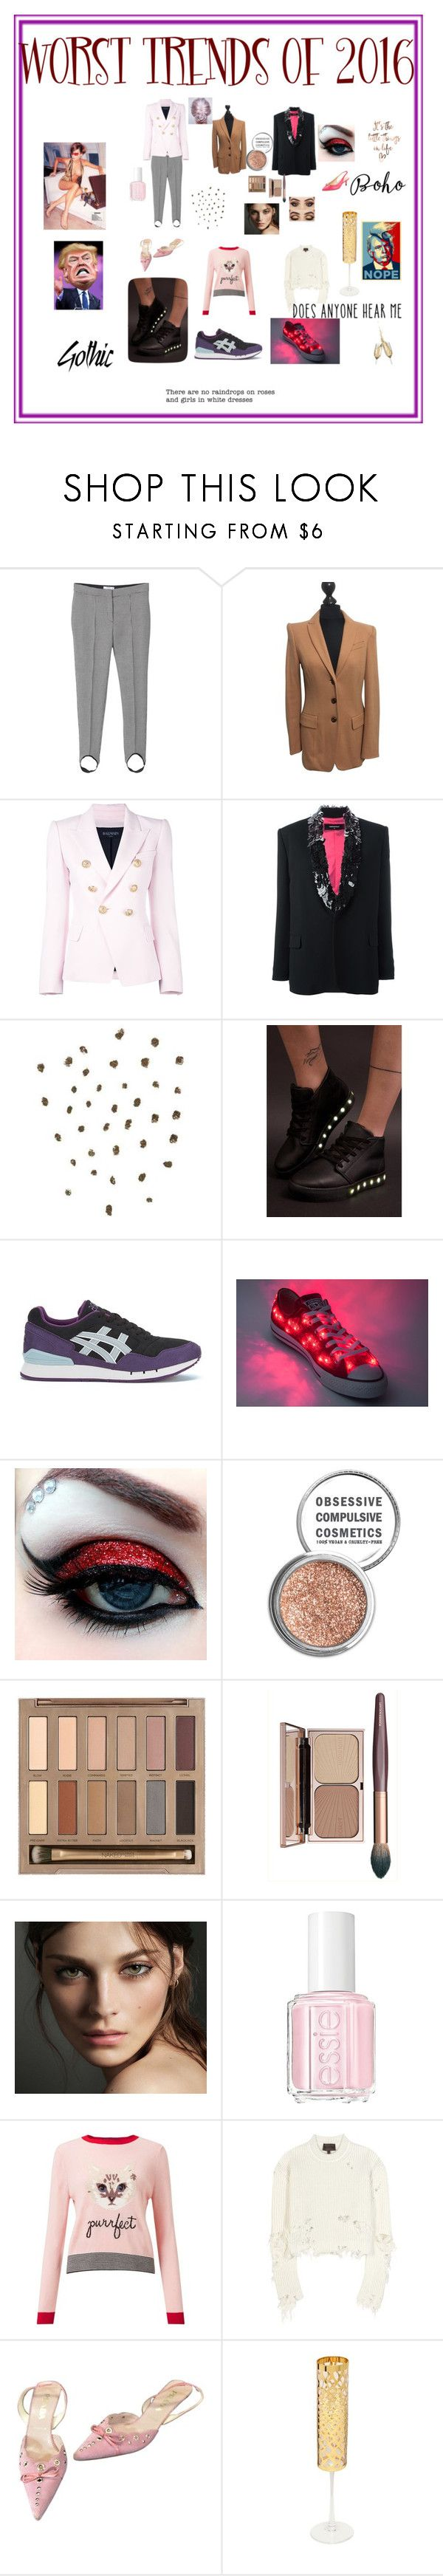 """worst trends of 2016"" by giagiagia ❤ liked on Polyvore featuring MANGO, MARC CAIN, Balmain, Dsquared2, Topshop, Asics, Obsessive Compulsive Cosmetics, Urban Decay, Burberry and Essie"